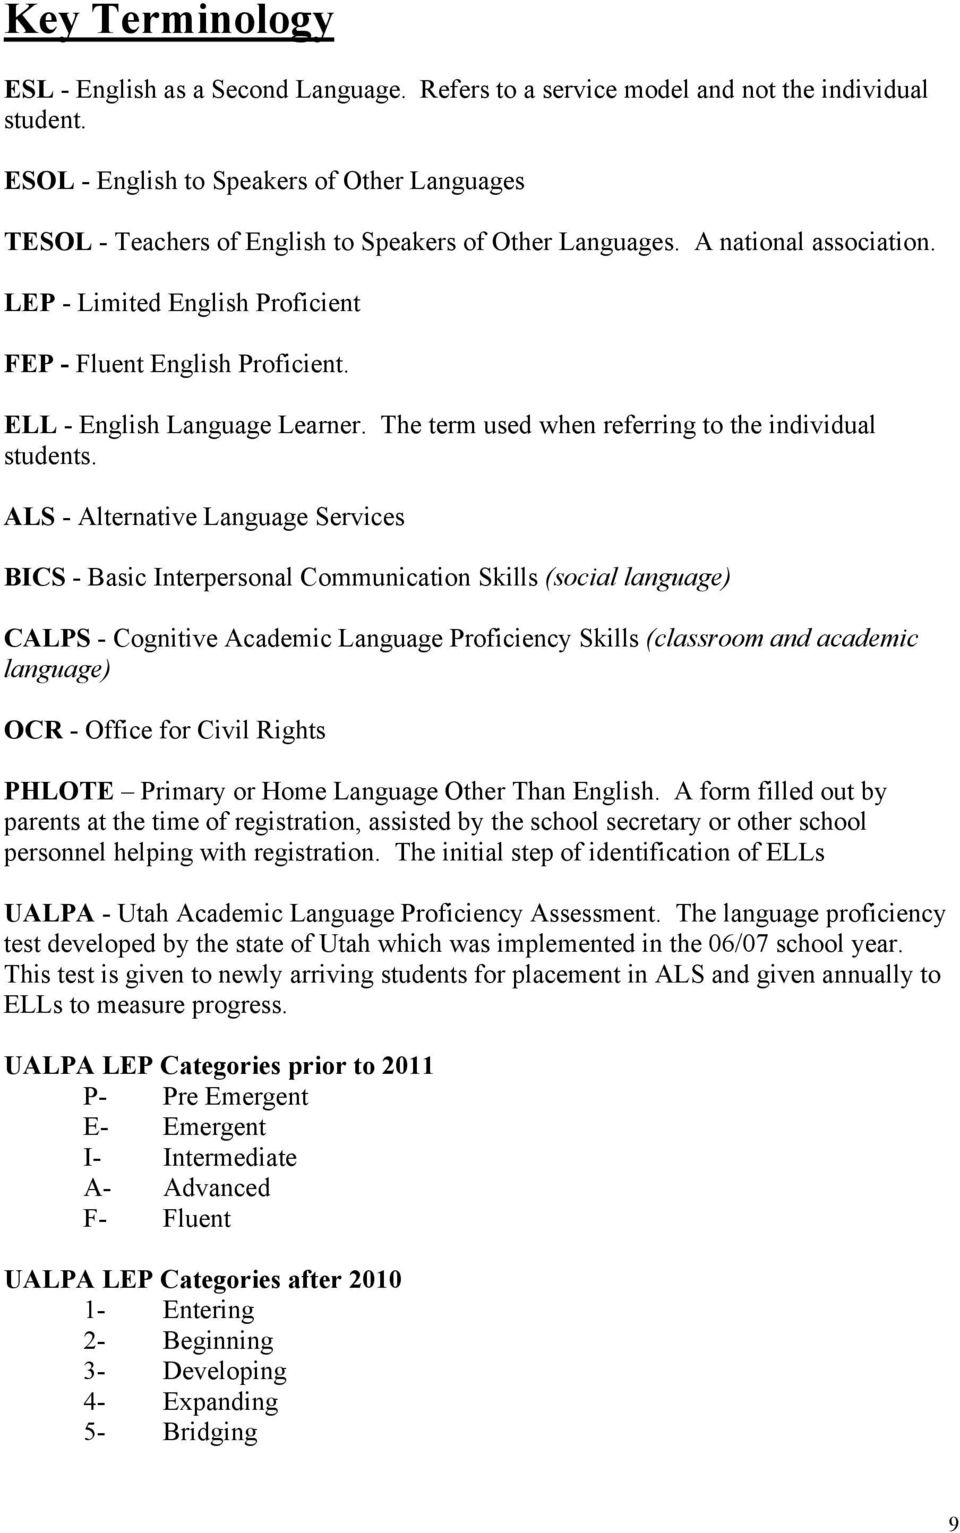 ELL - English Language Learner. The term used when referring to the individual students.